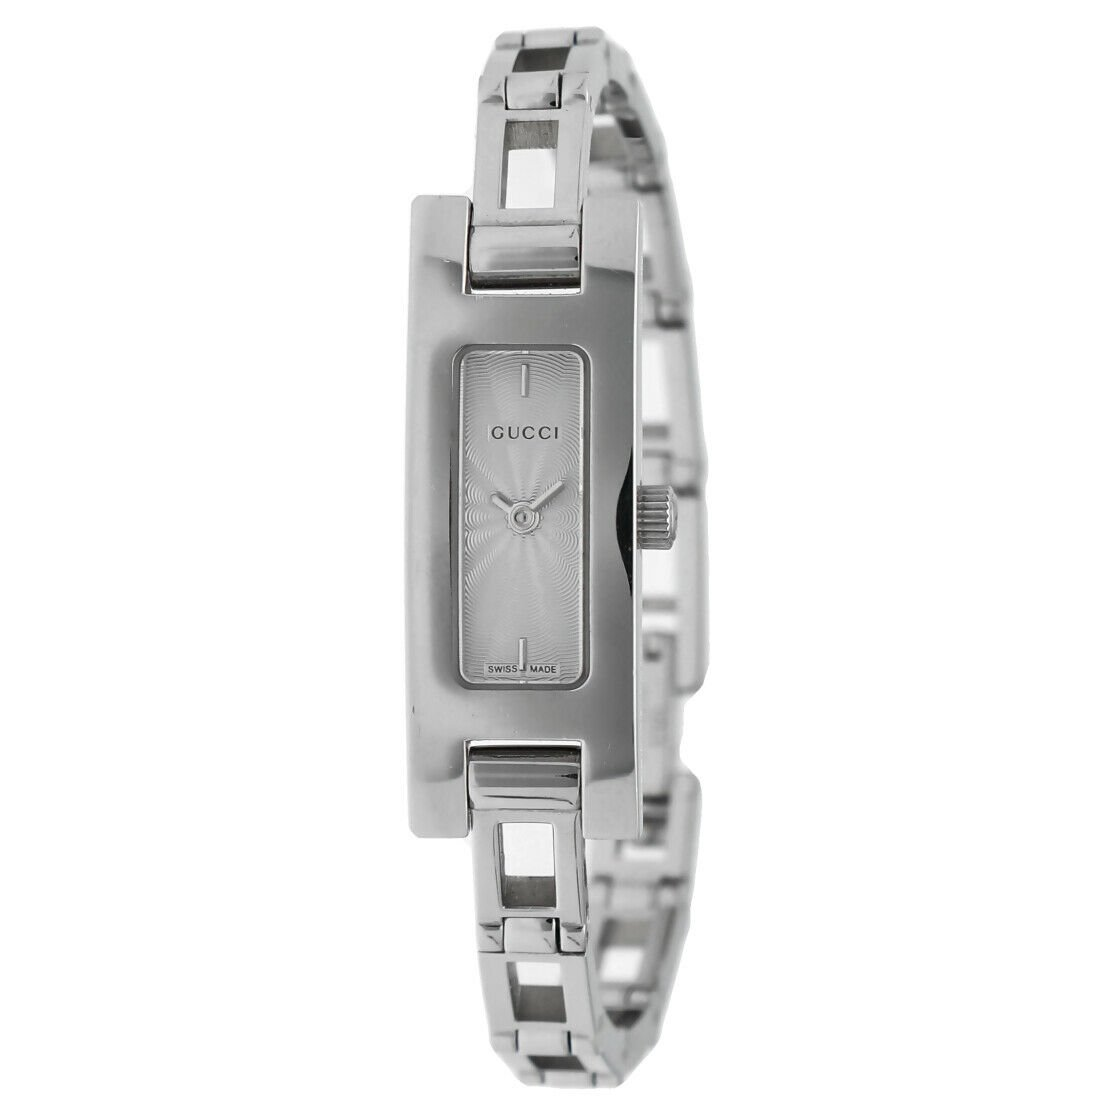 Gucci 3900L Stainless Steel Silver Dial Rectangle Swiss Quartz Womens Watch 133538249984